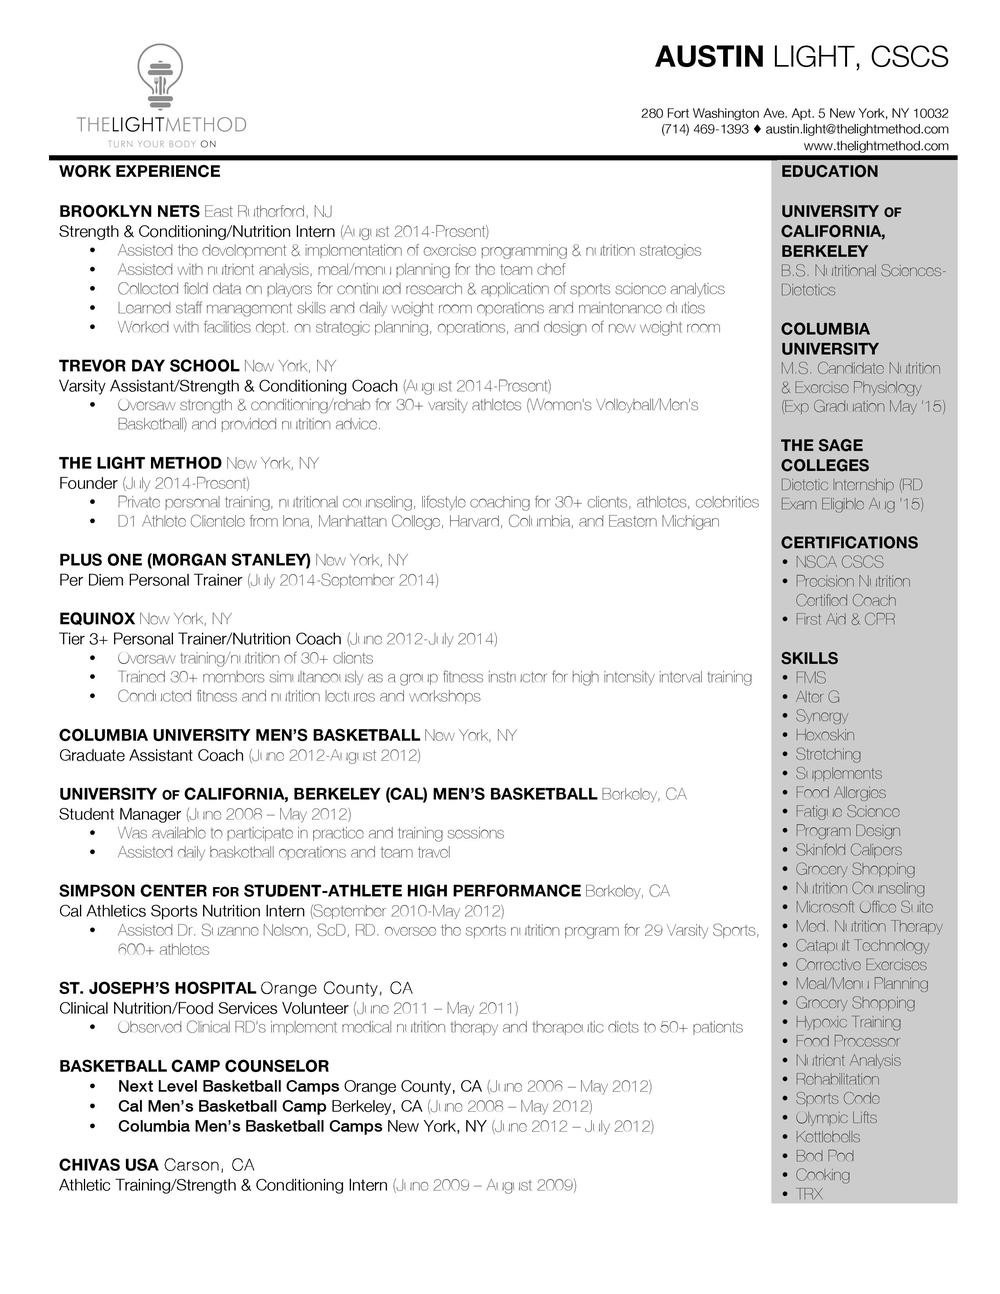 Homework Help Winfield Public Library resume austin Samples essay